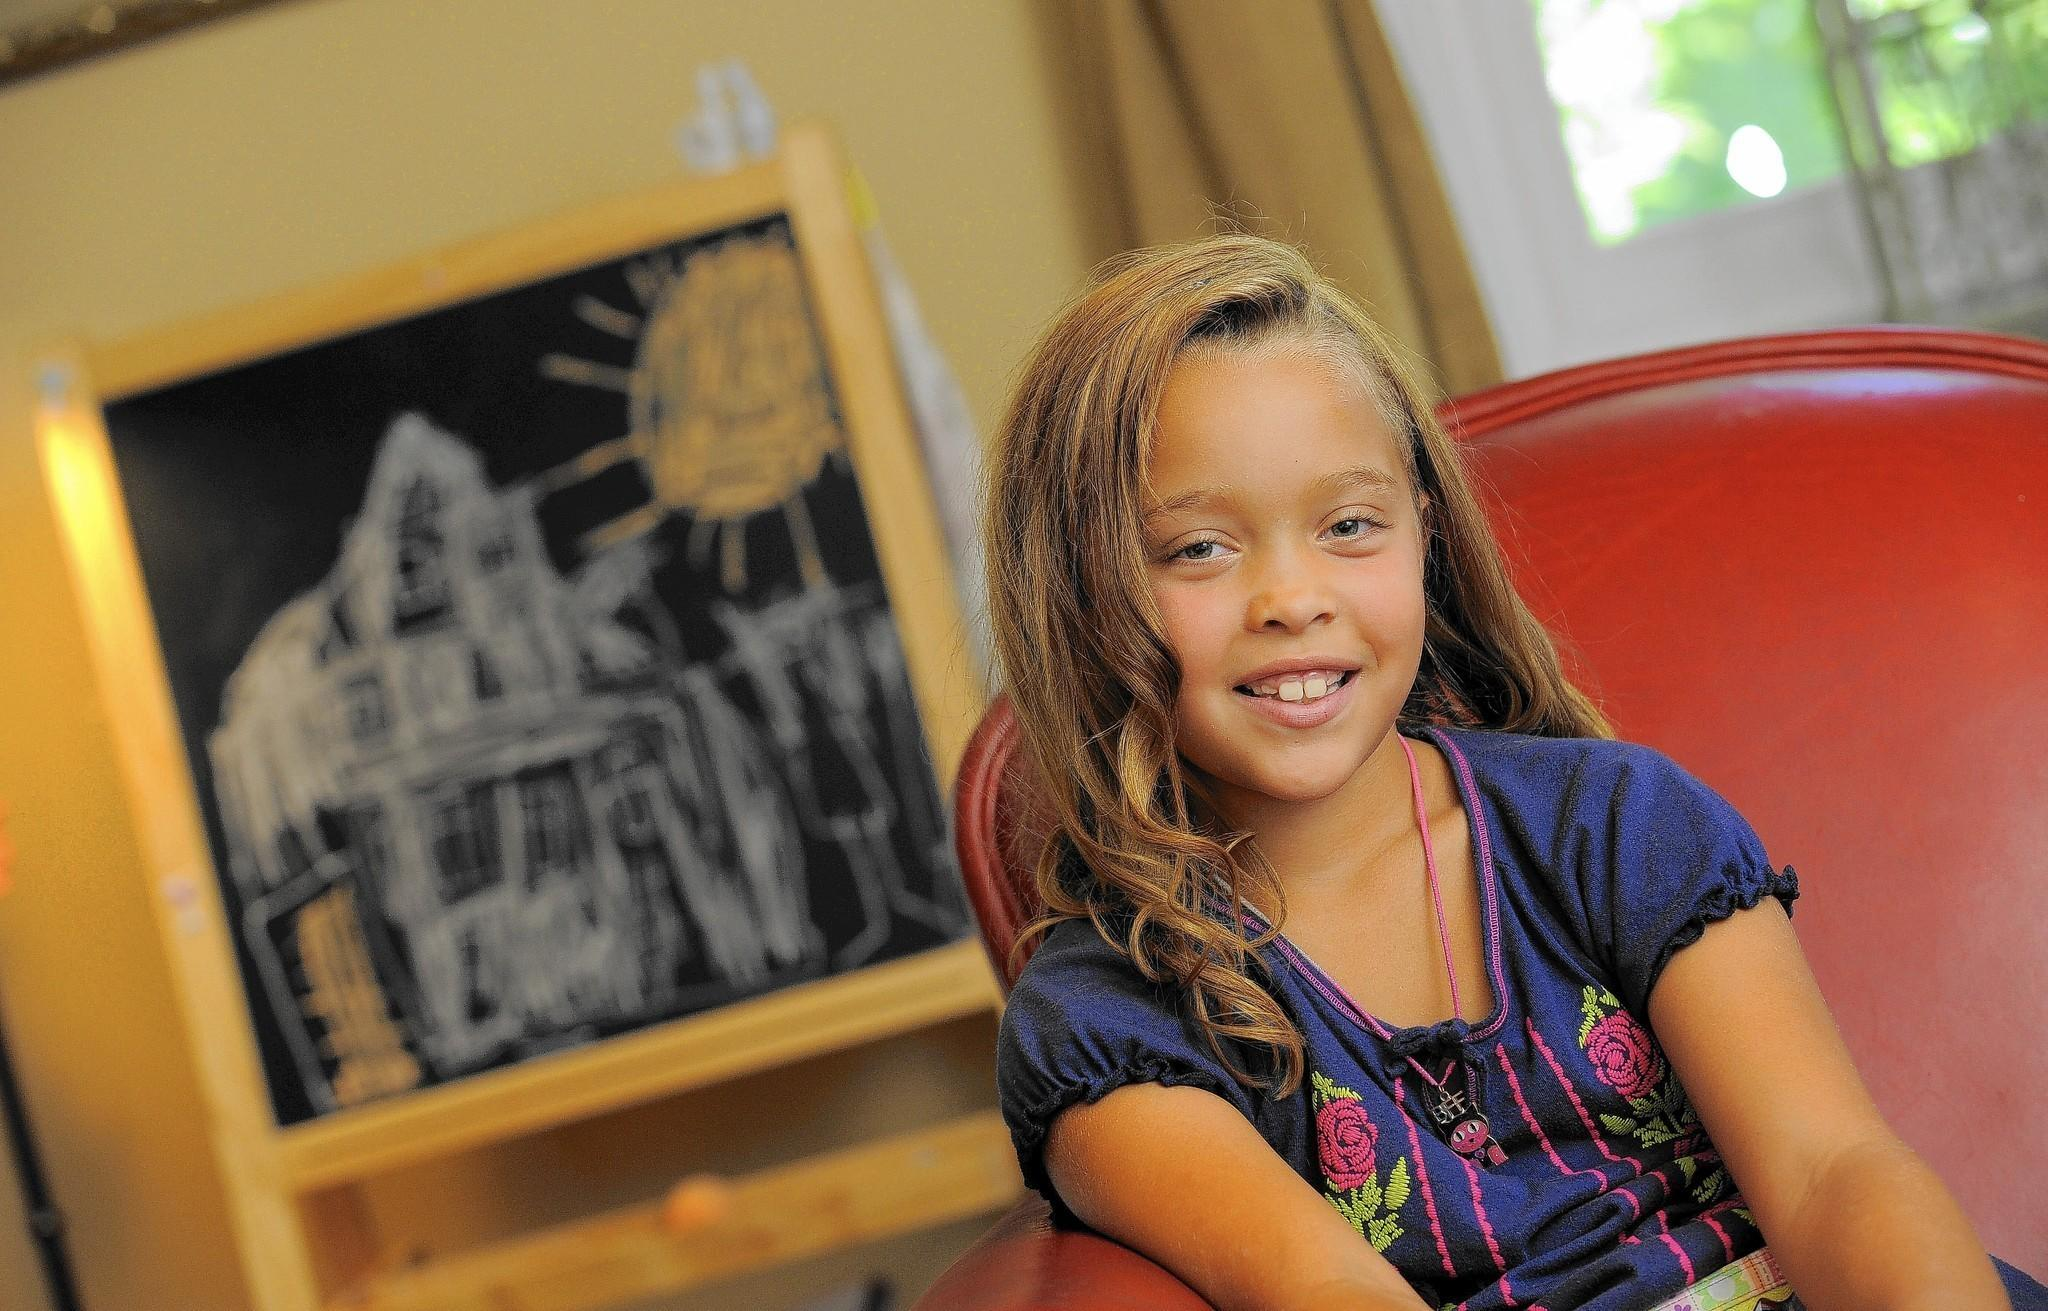 """Zara Cheek, a 7-year-old girl with Type I diabetes, participated in a """"bionic pancreas"""" study at a camp in Boston this summer. """"I had an excellent time, and I never got homesick,"""" she said. """"I can't wait to go next year."""""""